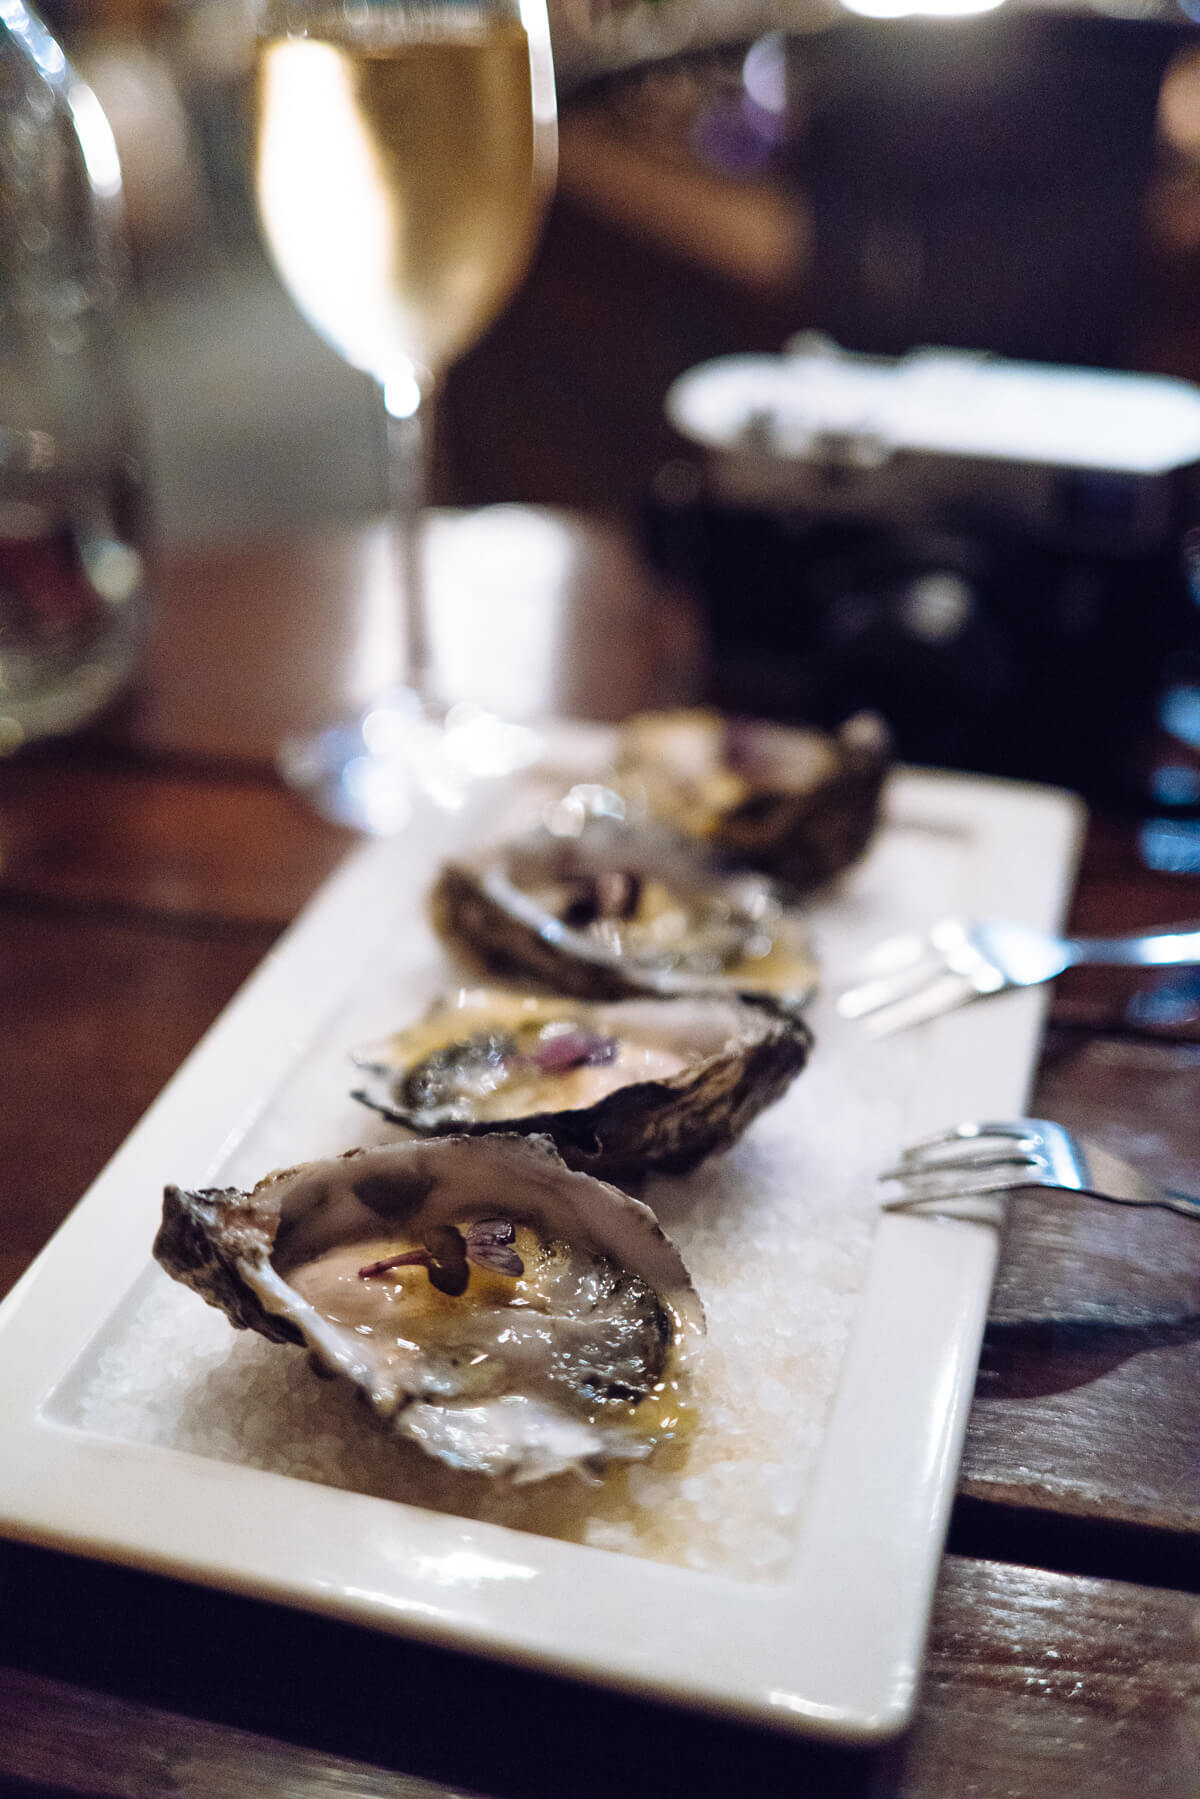 Try the oysters at The Lark in Santa barbara, The Taste SF